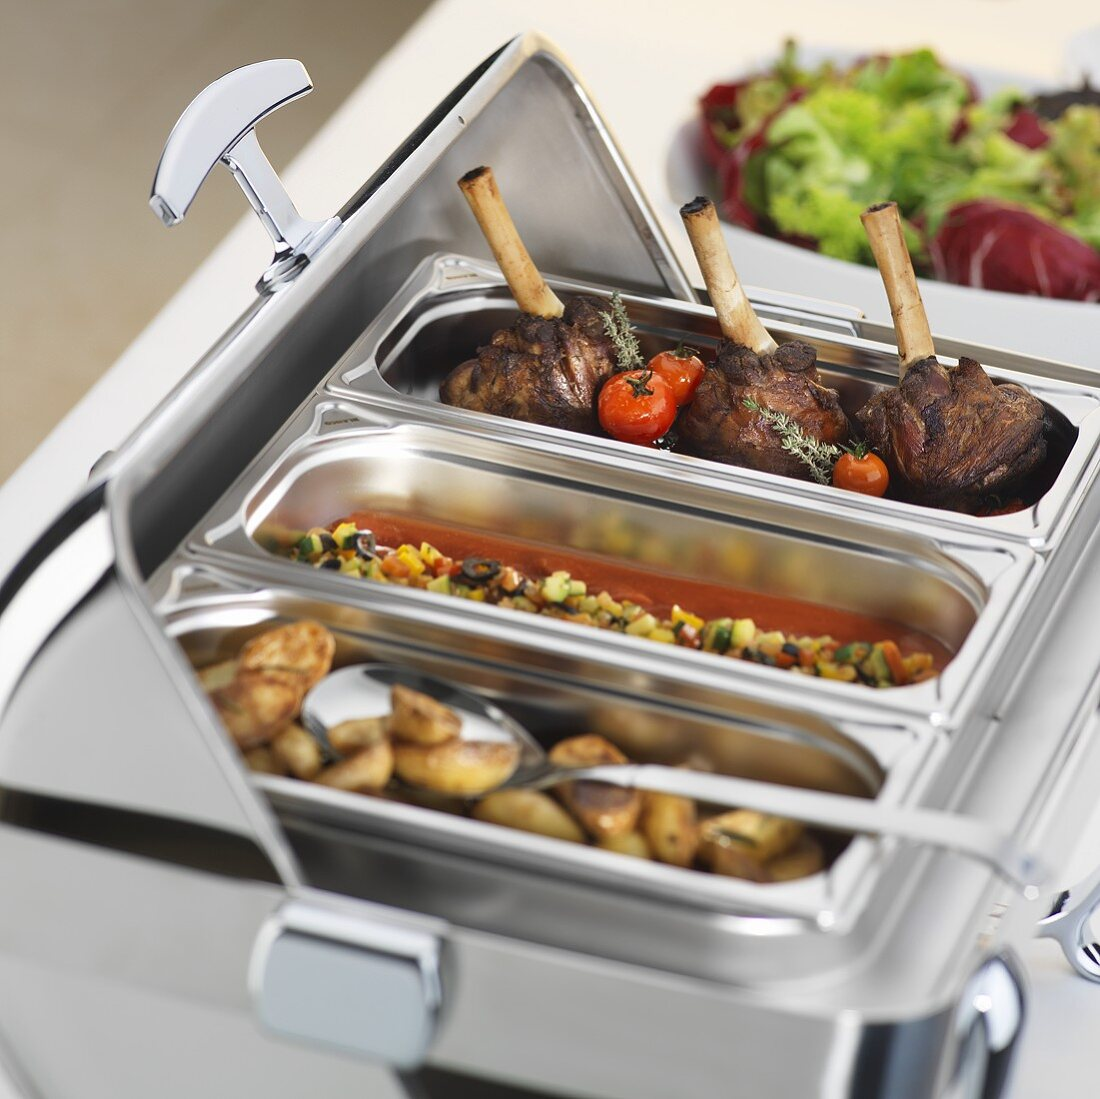 Legs of lamb and vegetables in heated serving counter